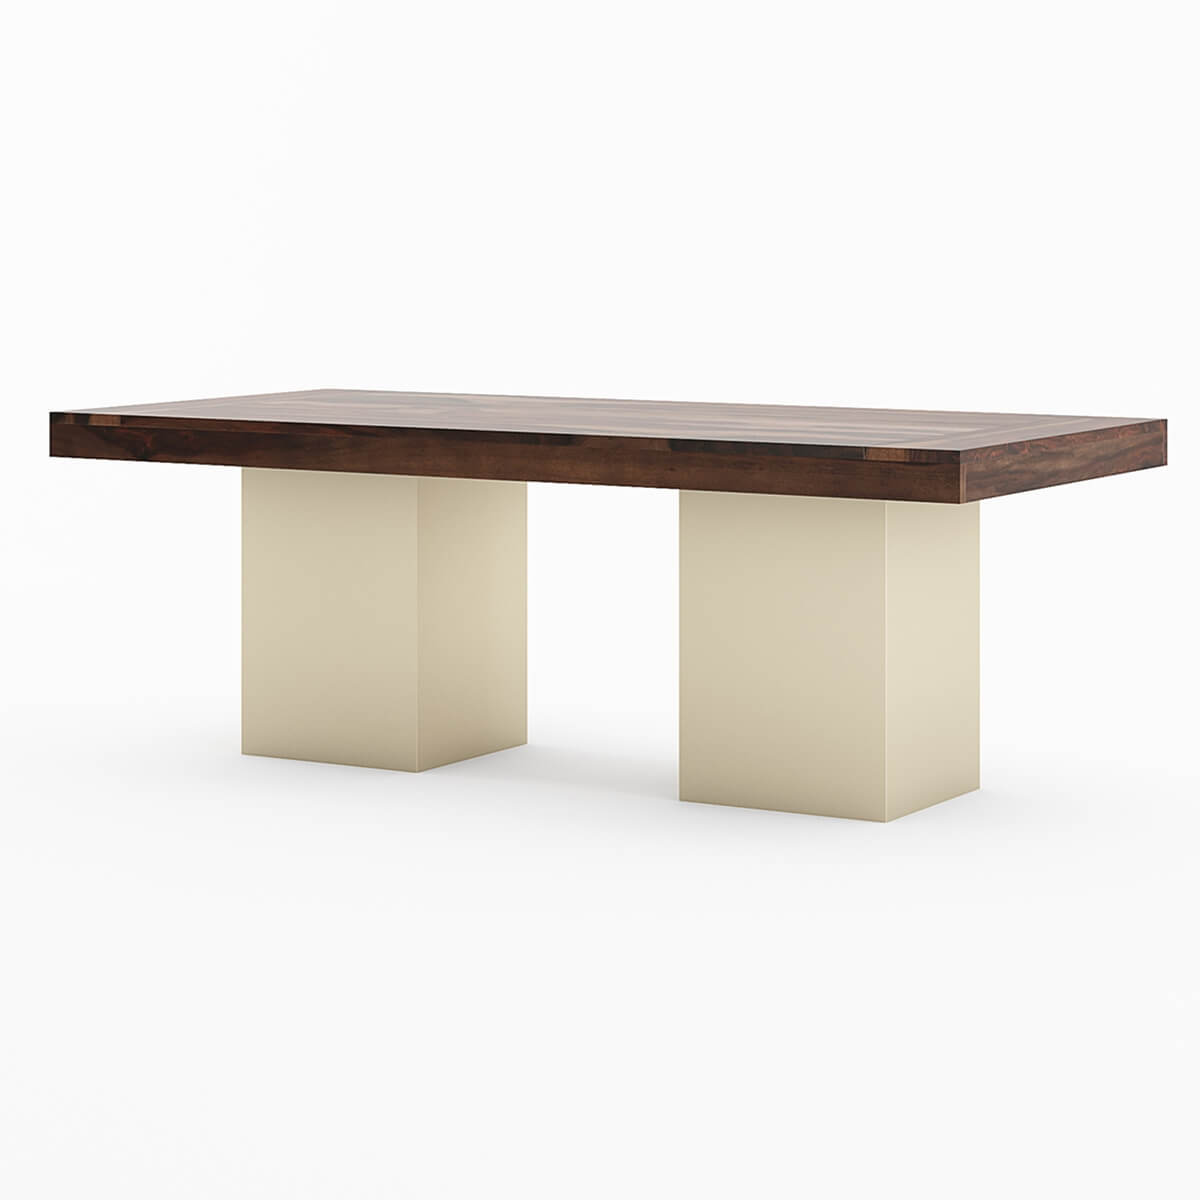 120 sierra large solid wood sutton pedestal modern dining for Modern wood dining room table